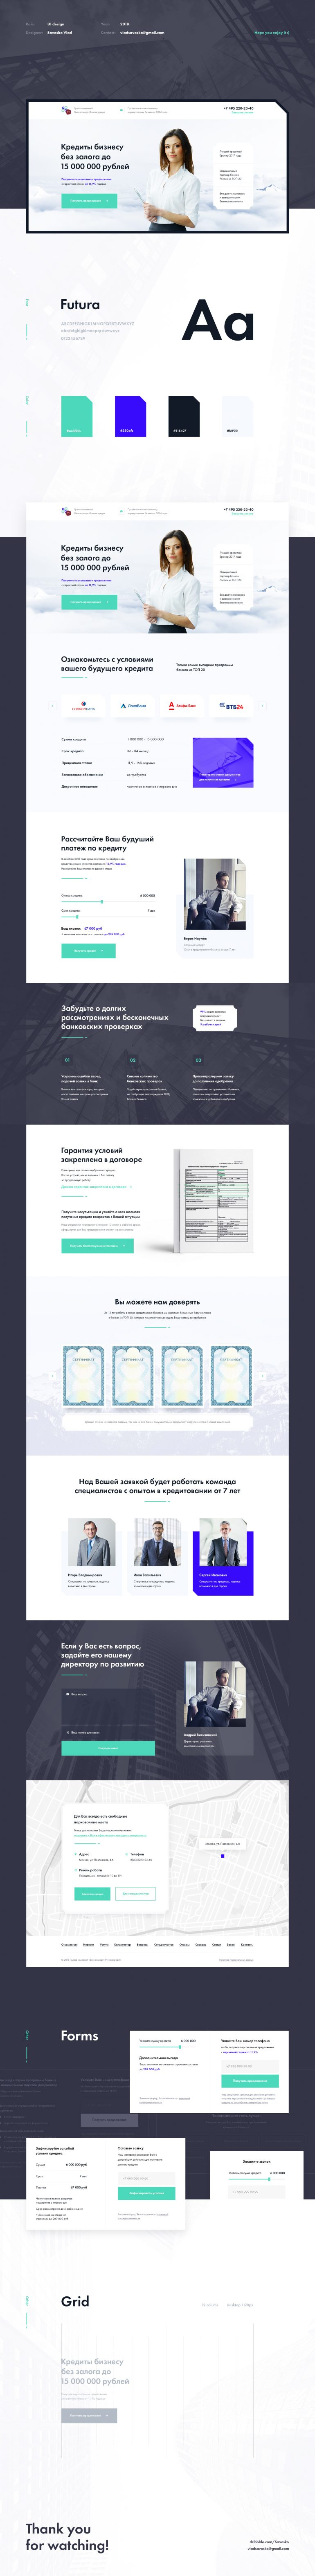 Business smart – landing page